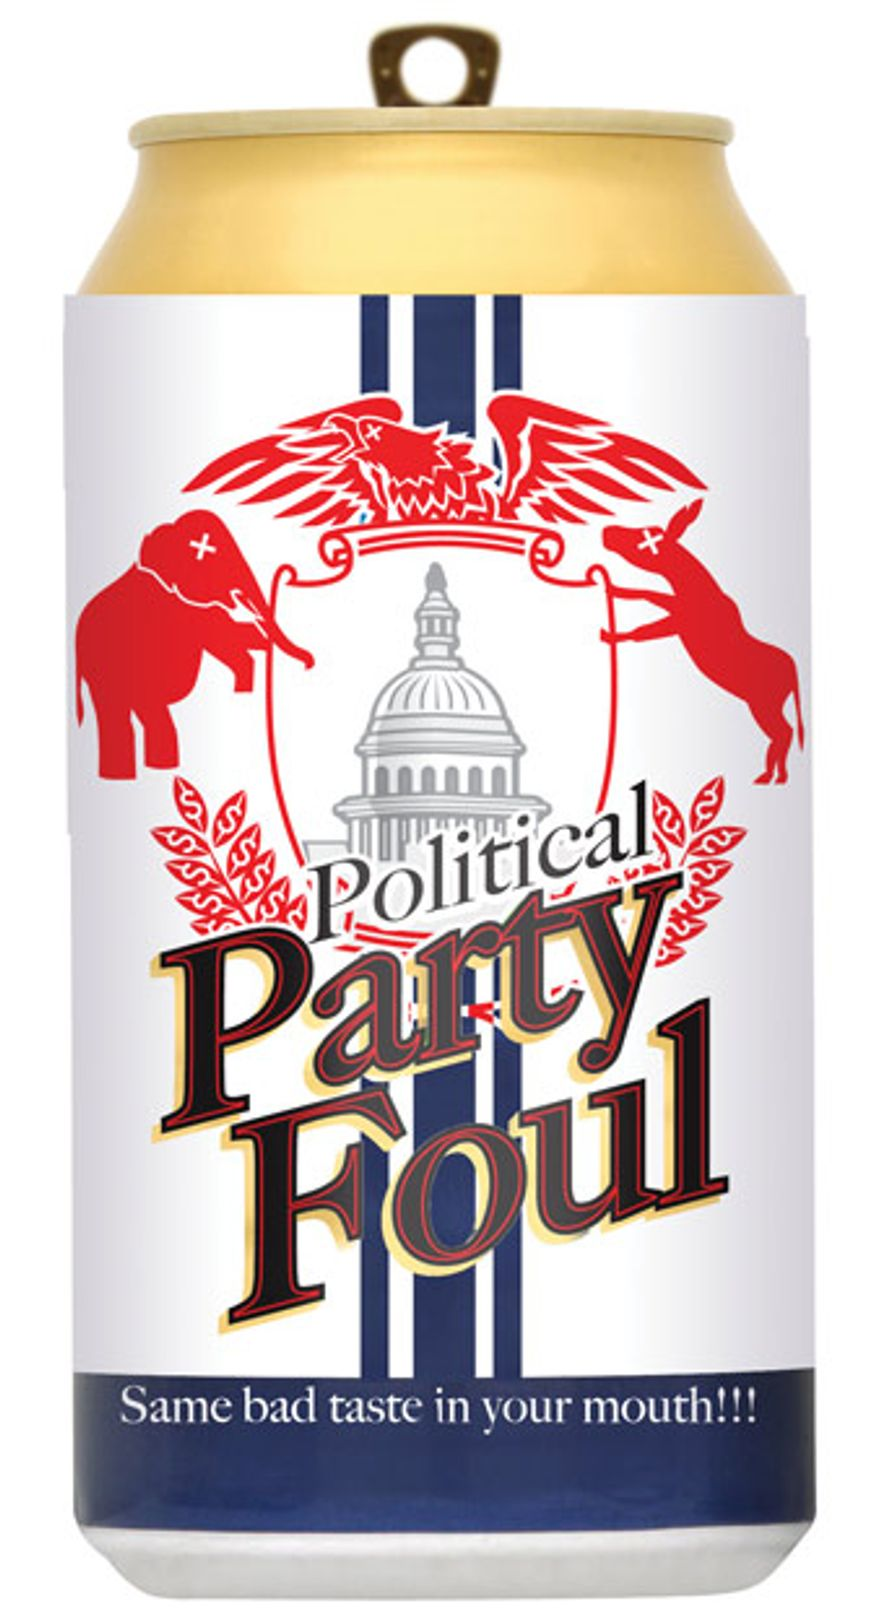 Illustration: Political party foul by Linas Garsys for The Washington Times